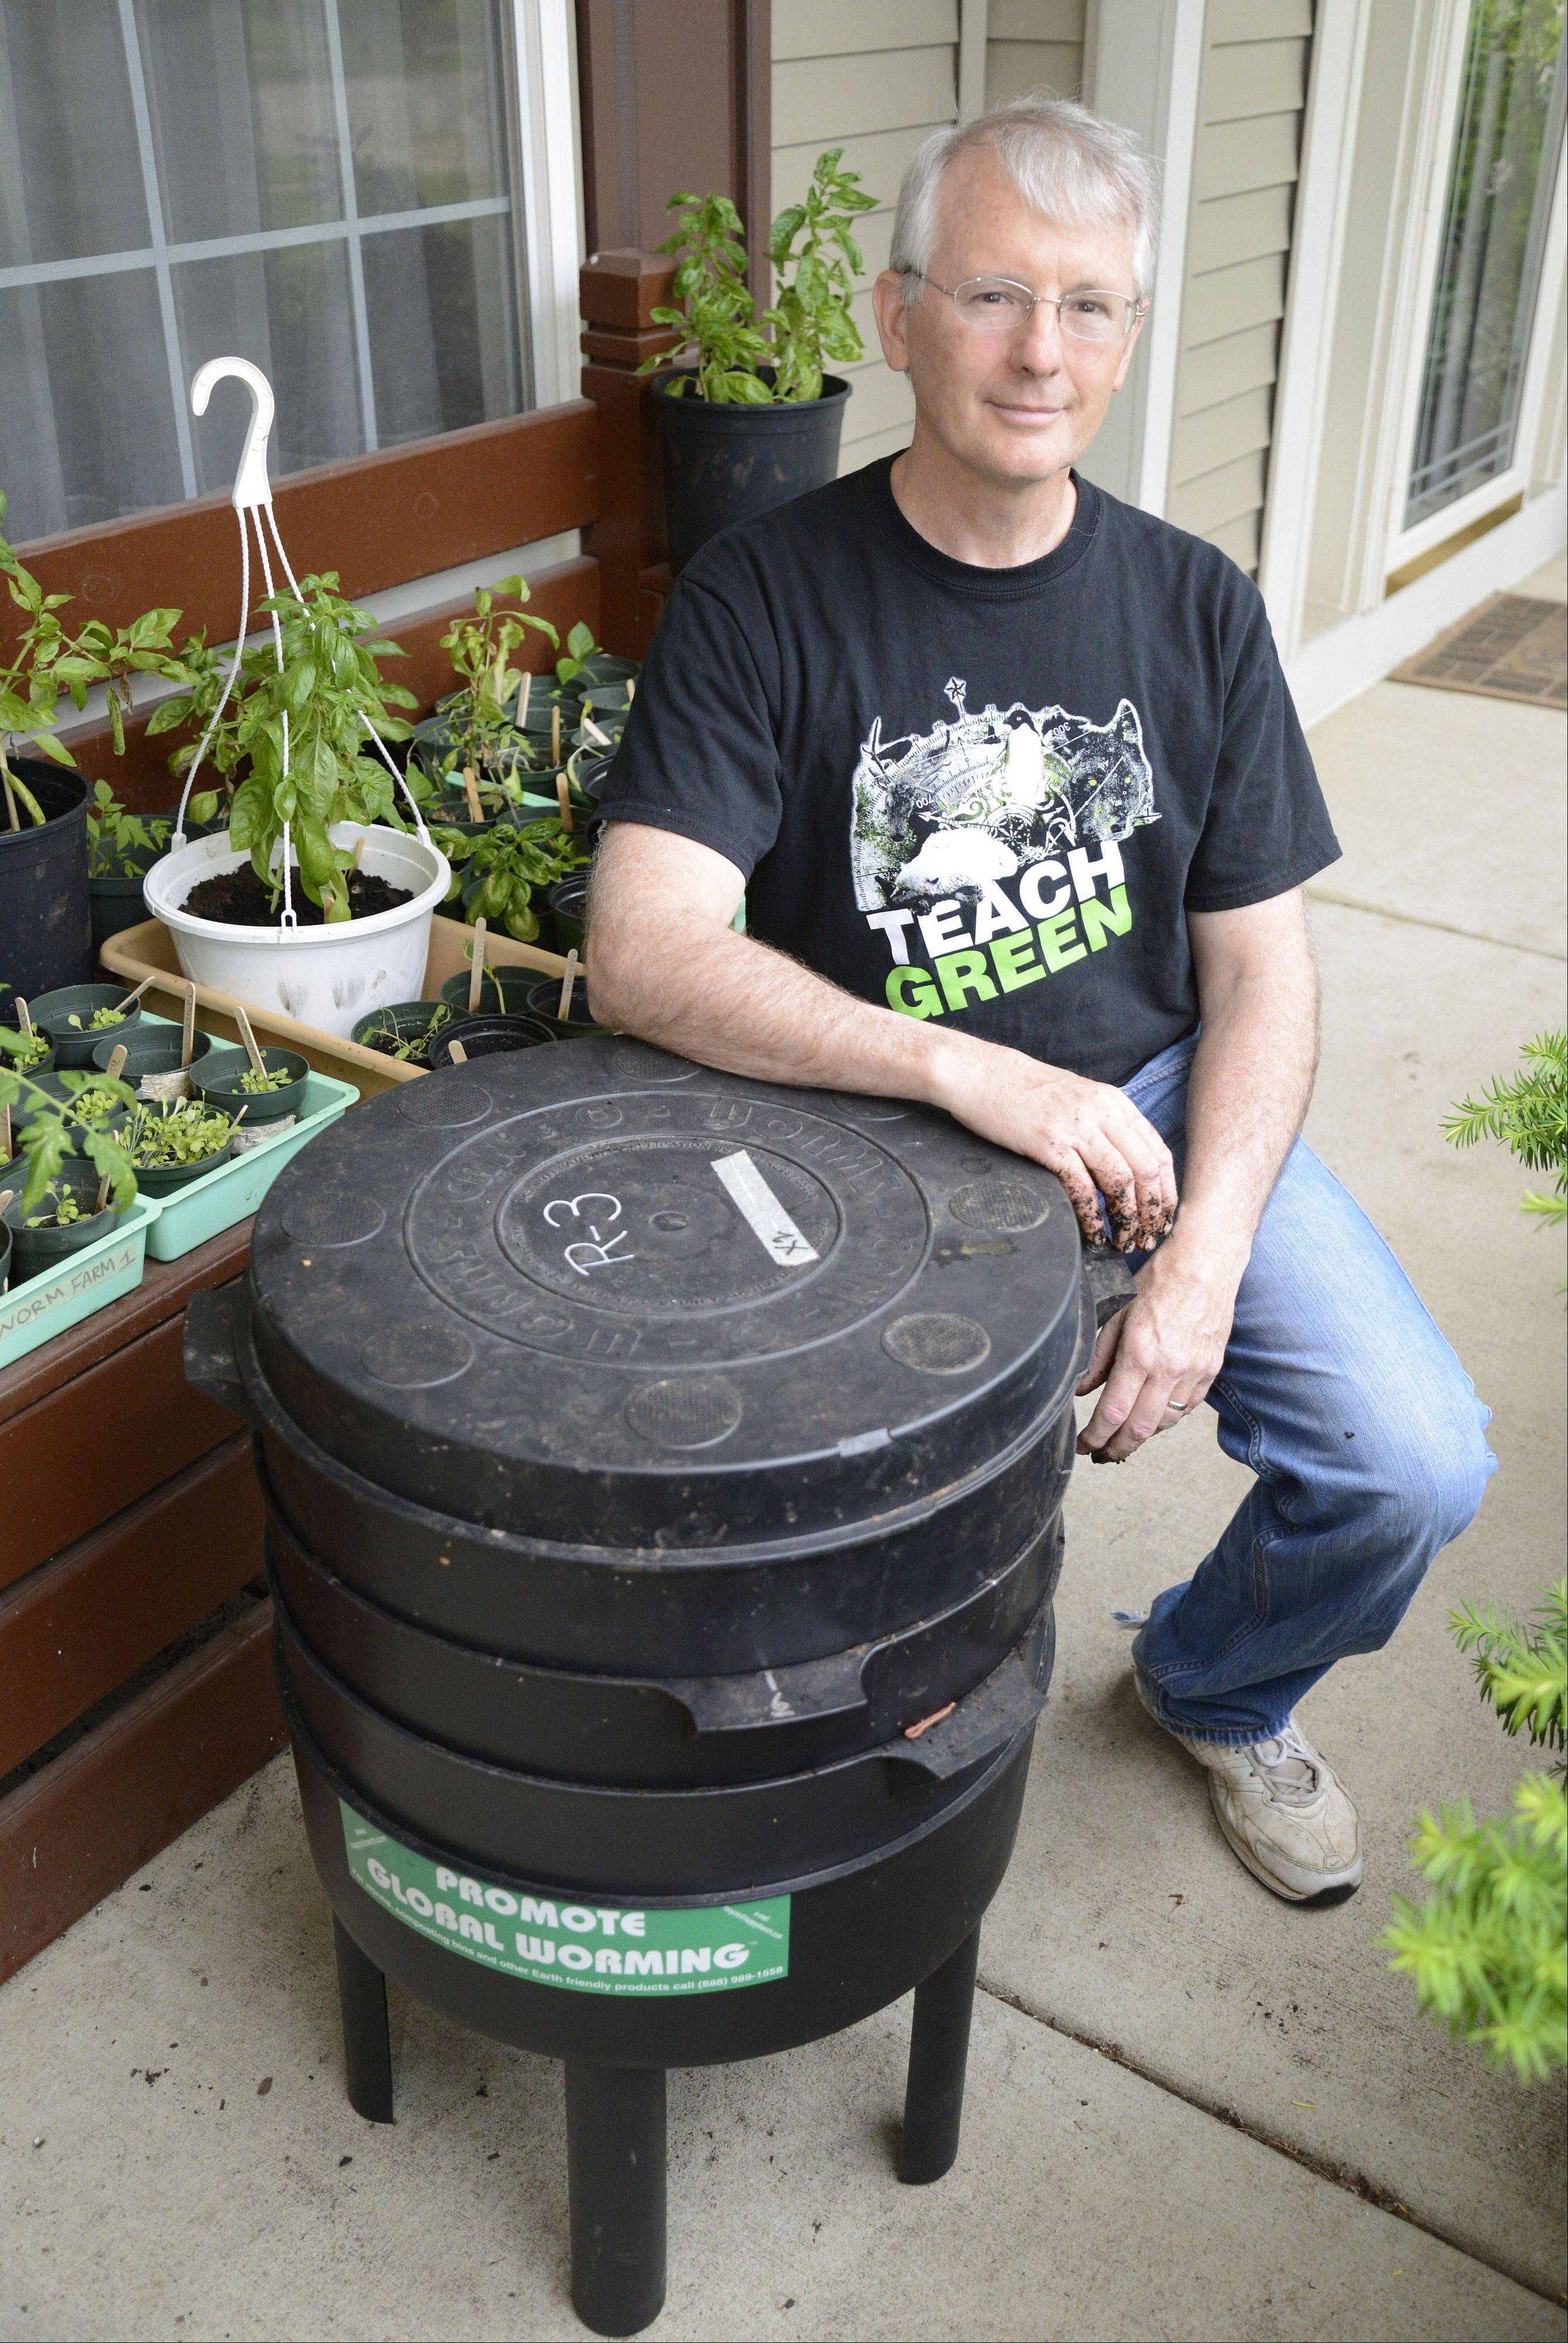 Greg Reiva of Algonquin is a physical science teacher at Streamwood High School. He brought home the worm farms, herbs and vegetables grown in his classroom greenhouse to tend to over the summer.